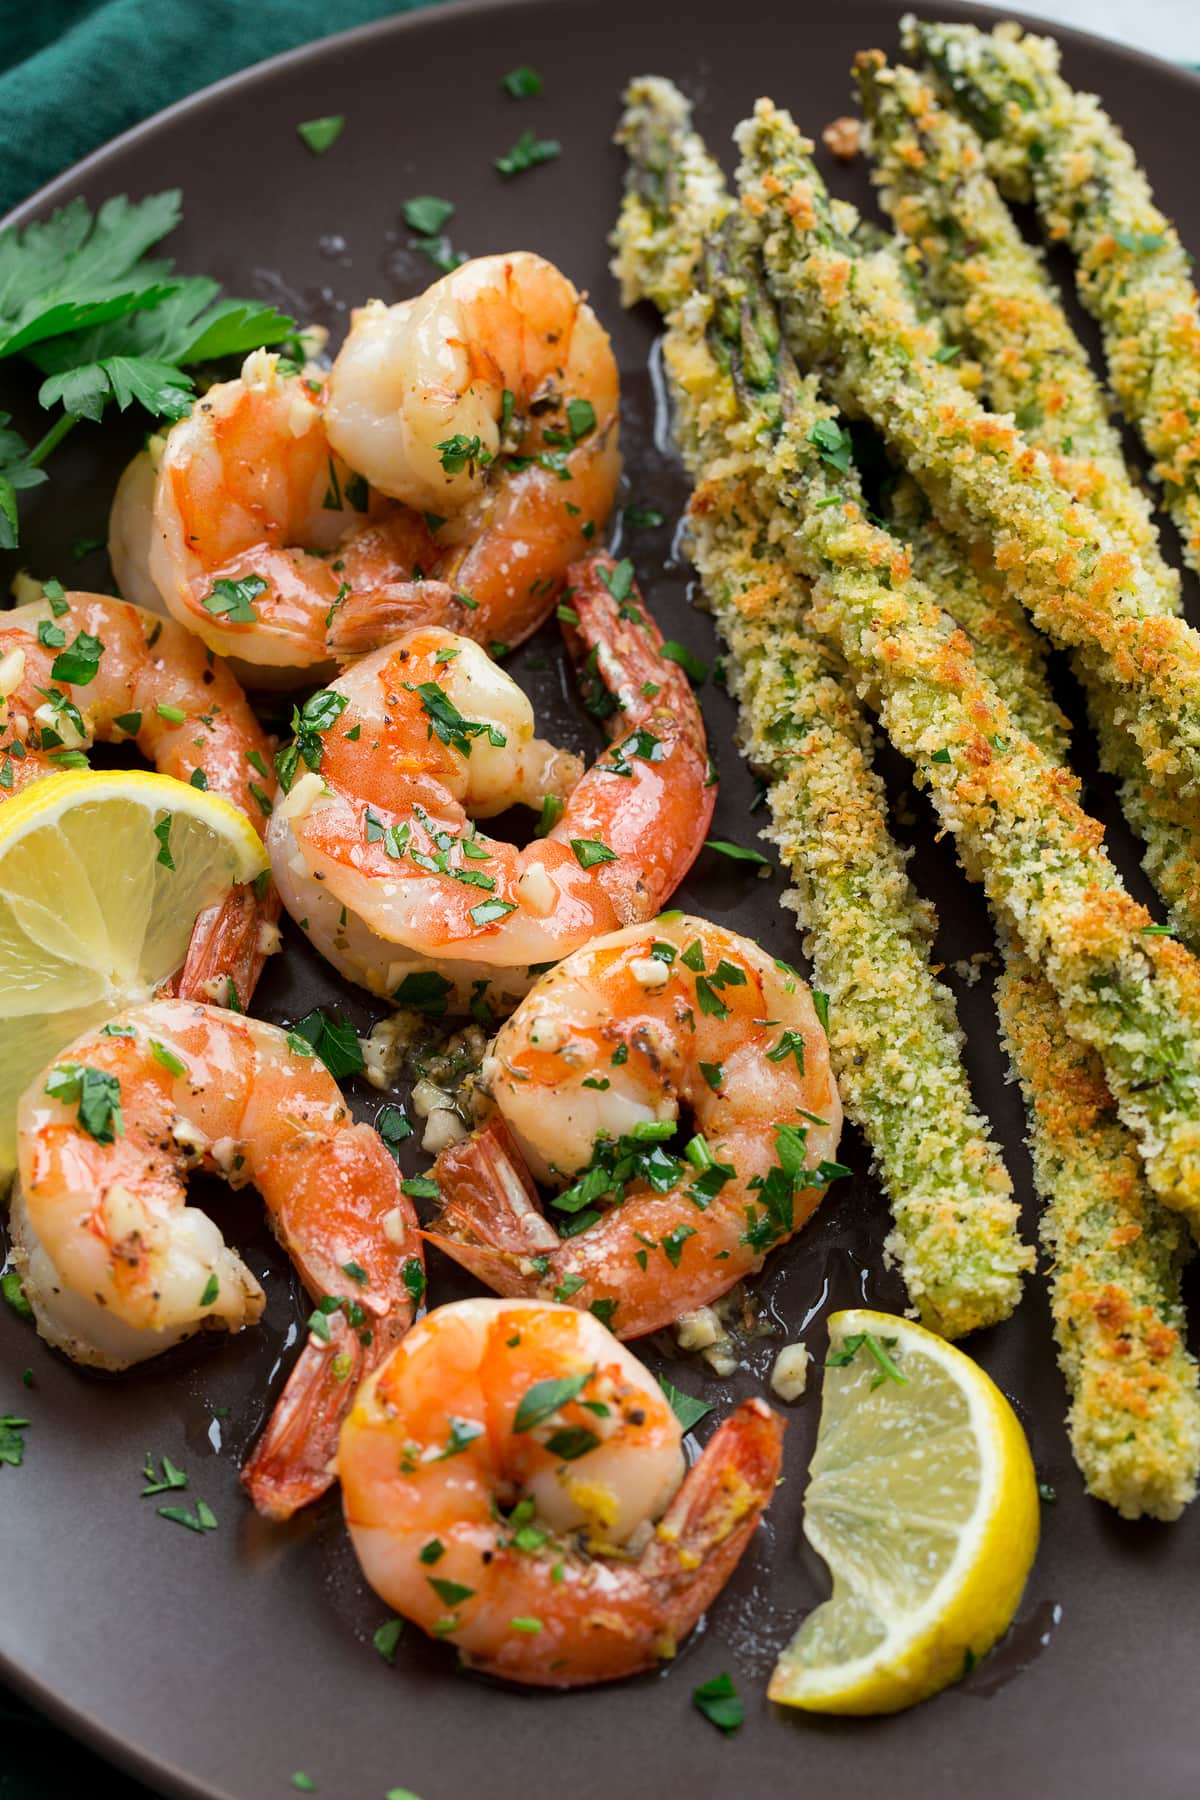 Close up image of shrimp and panko crusted asparagus on a dark brown plate.